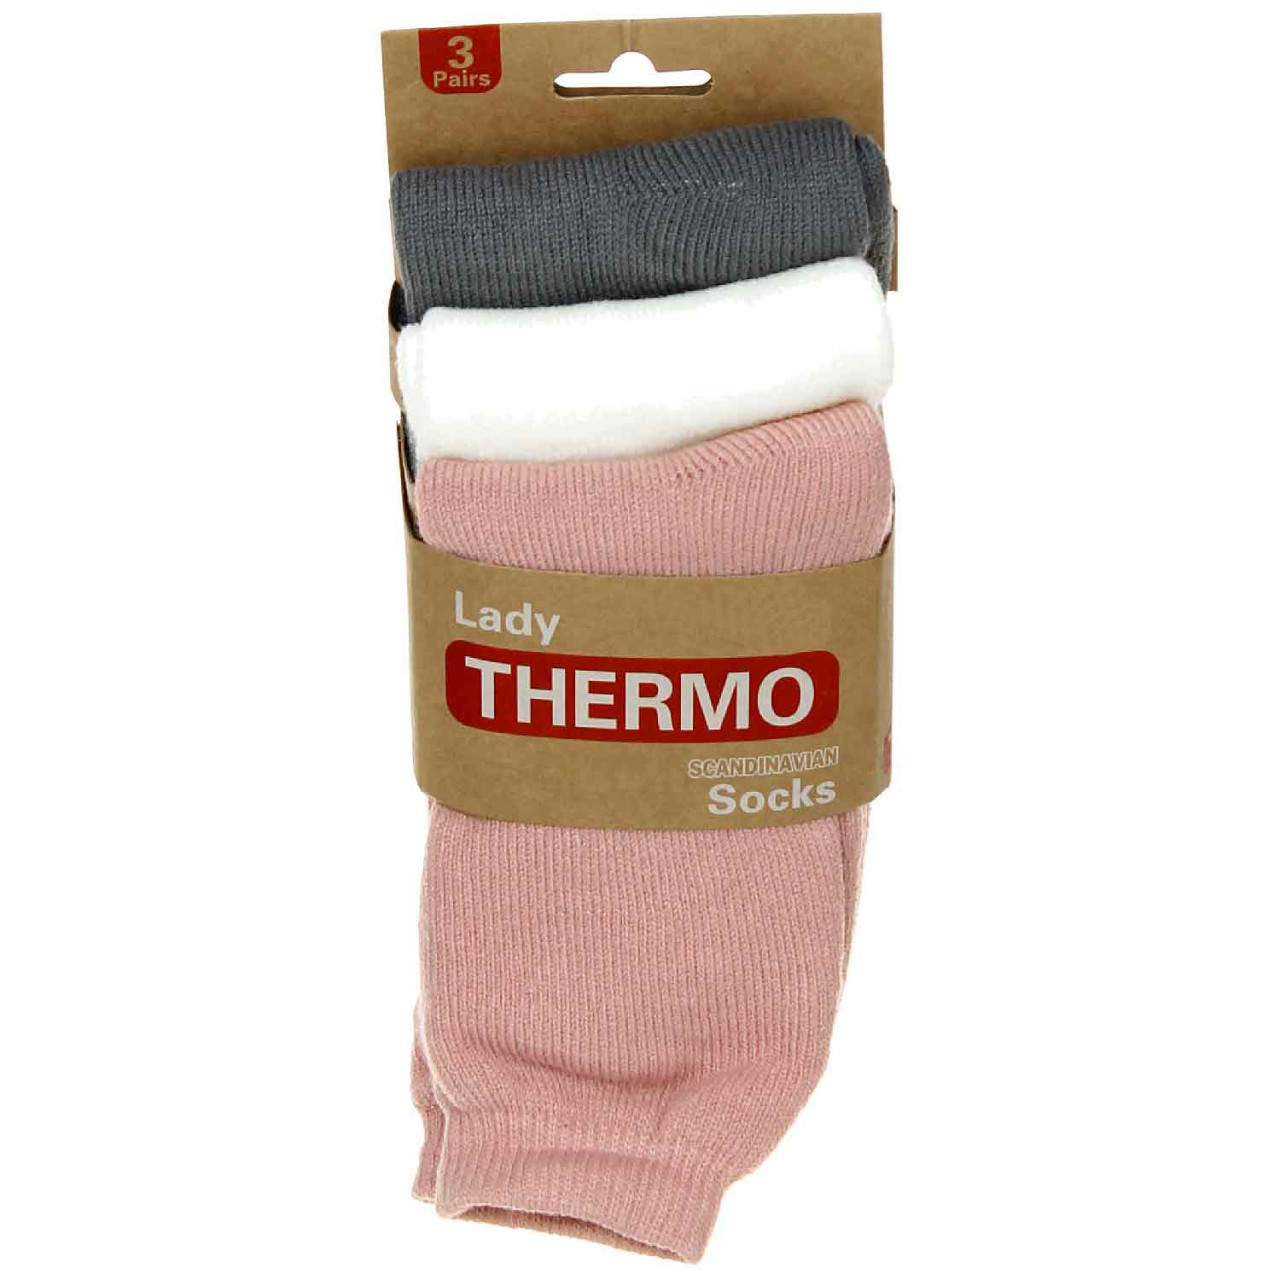 Antonio Damen Thermosocken 3er Pack 39-42 beige/rose/grau